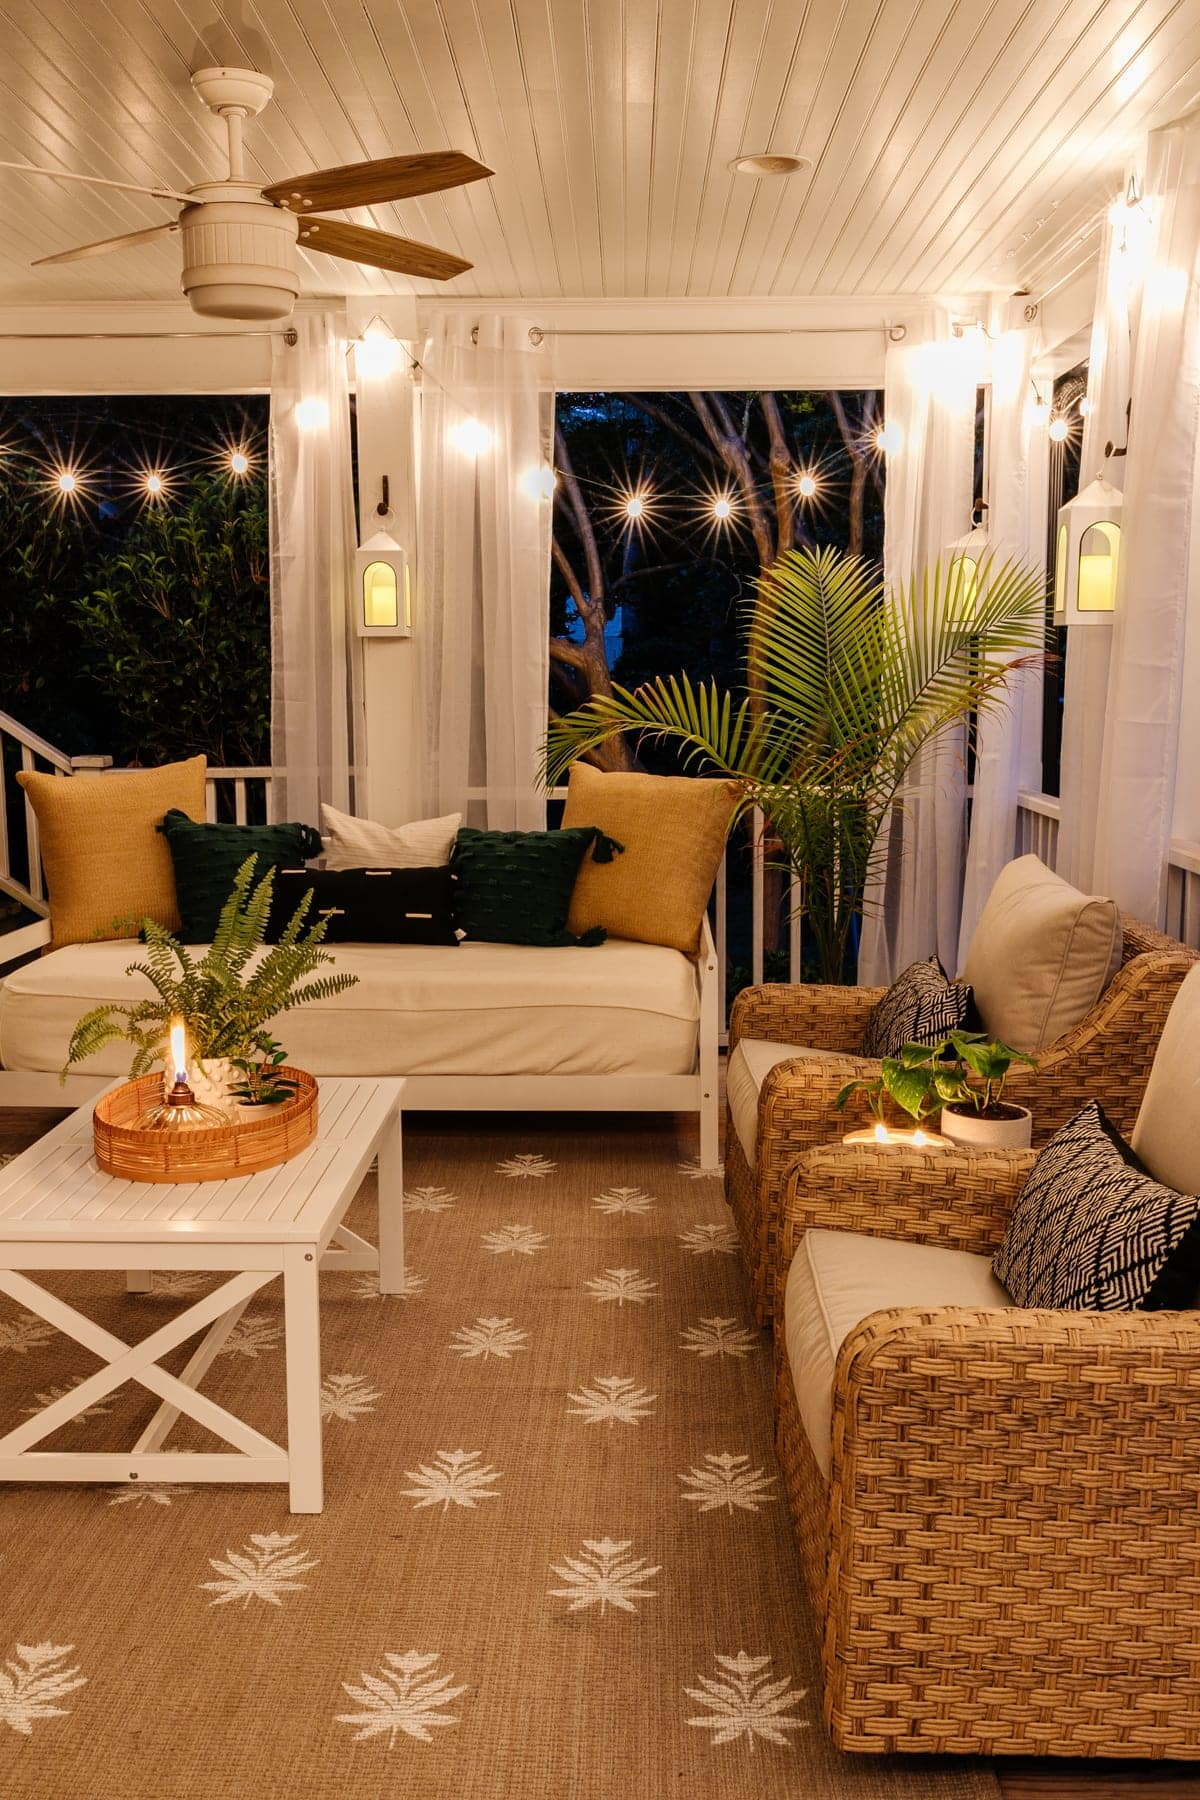 back porch at night with twinkle lights and candles